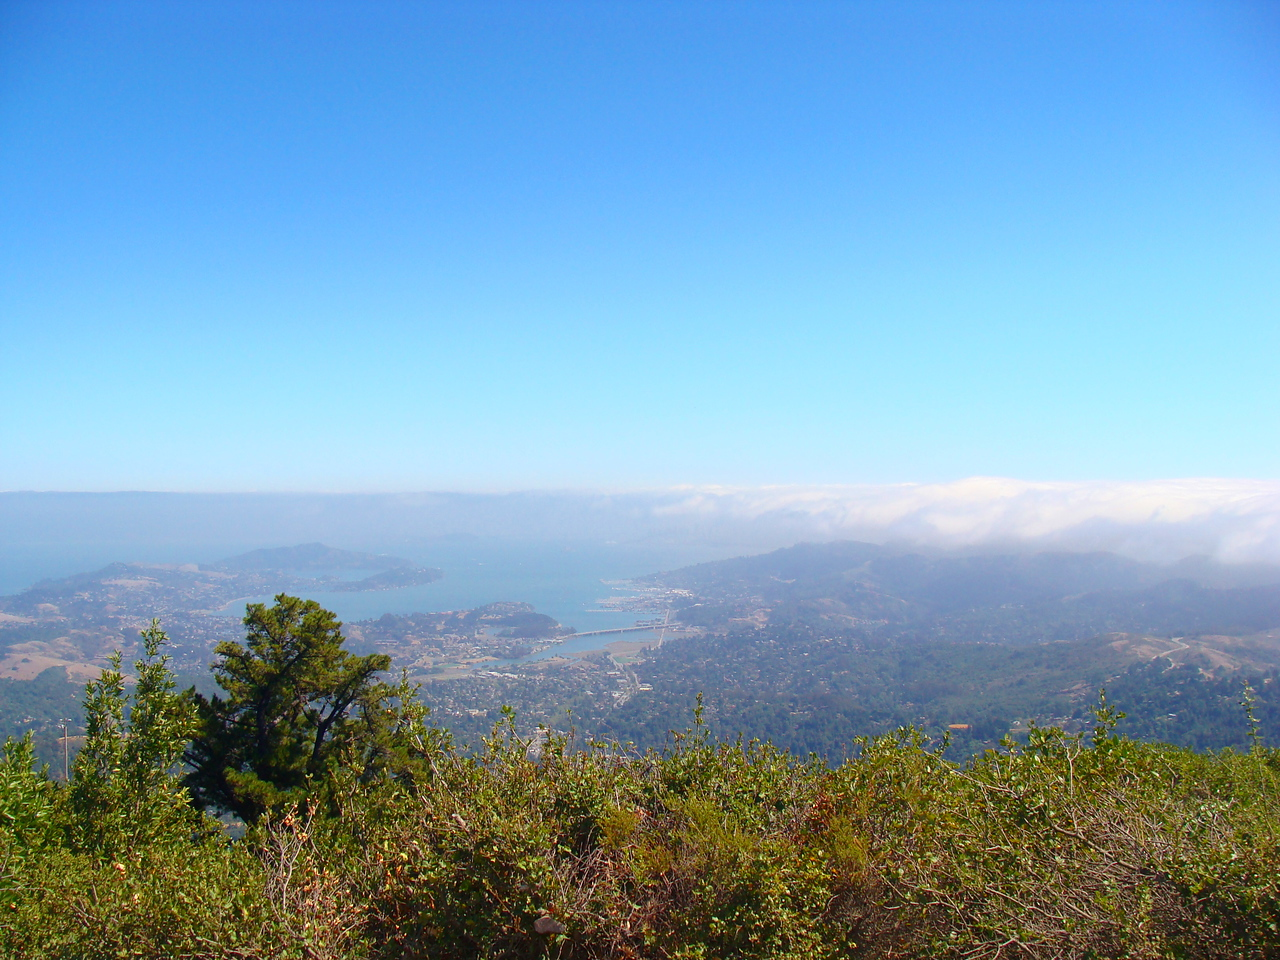 San Francisco Bay Area from Mt. Tamalpais